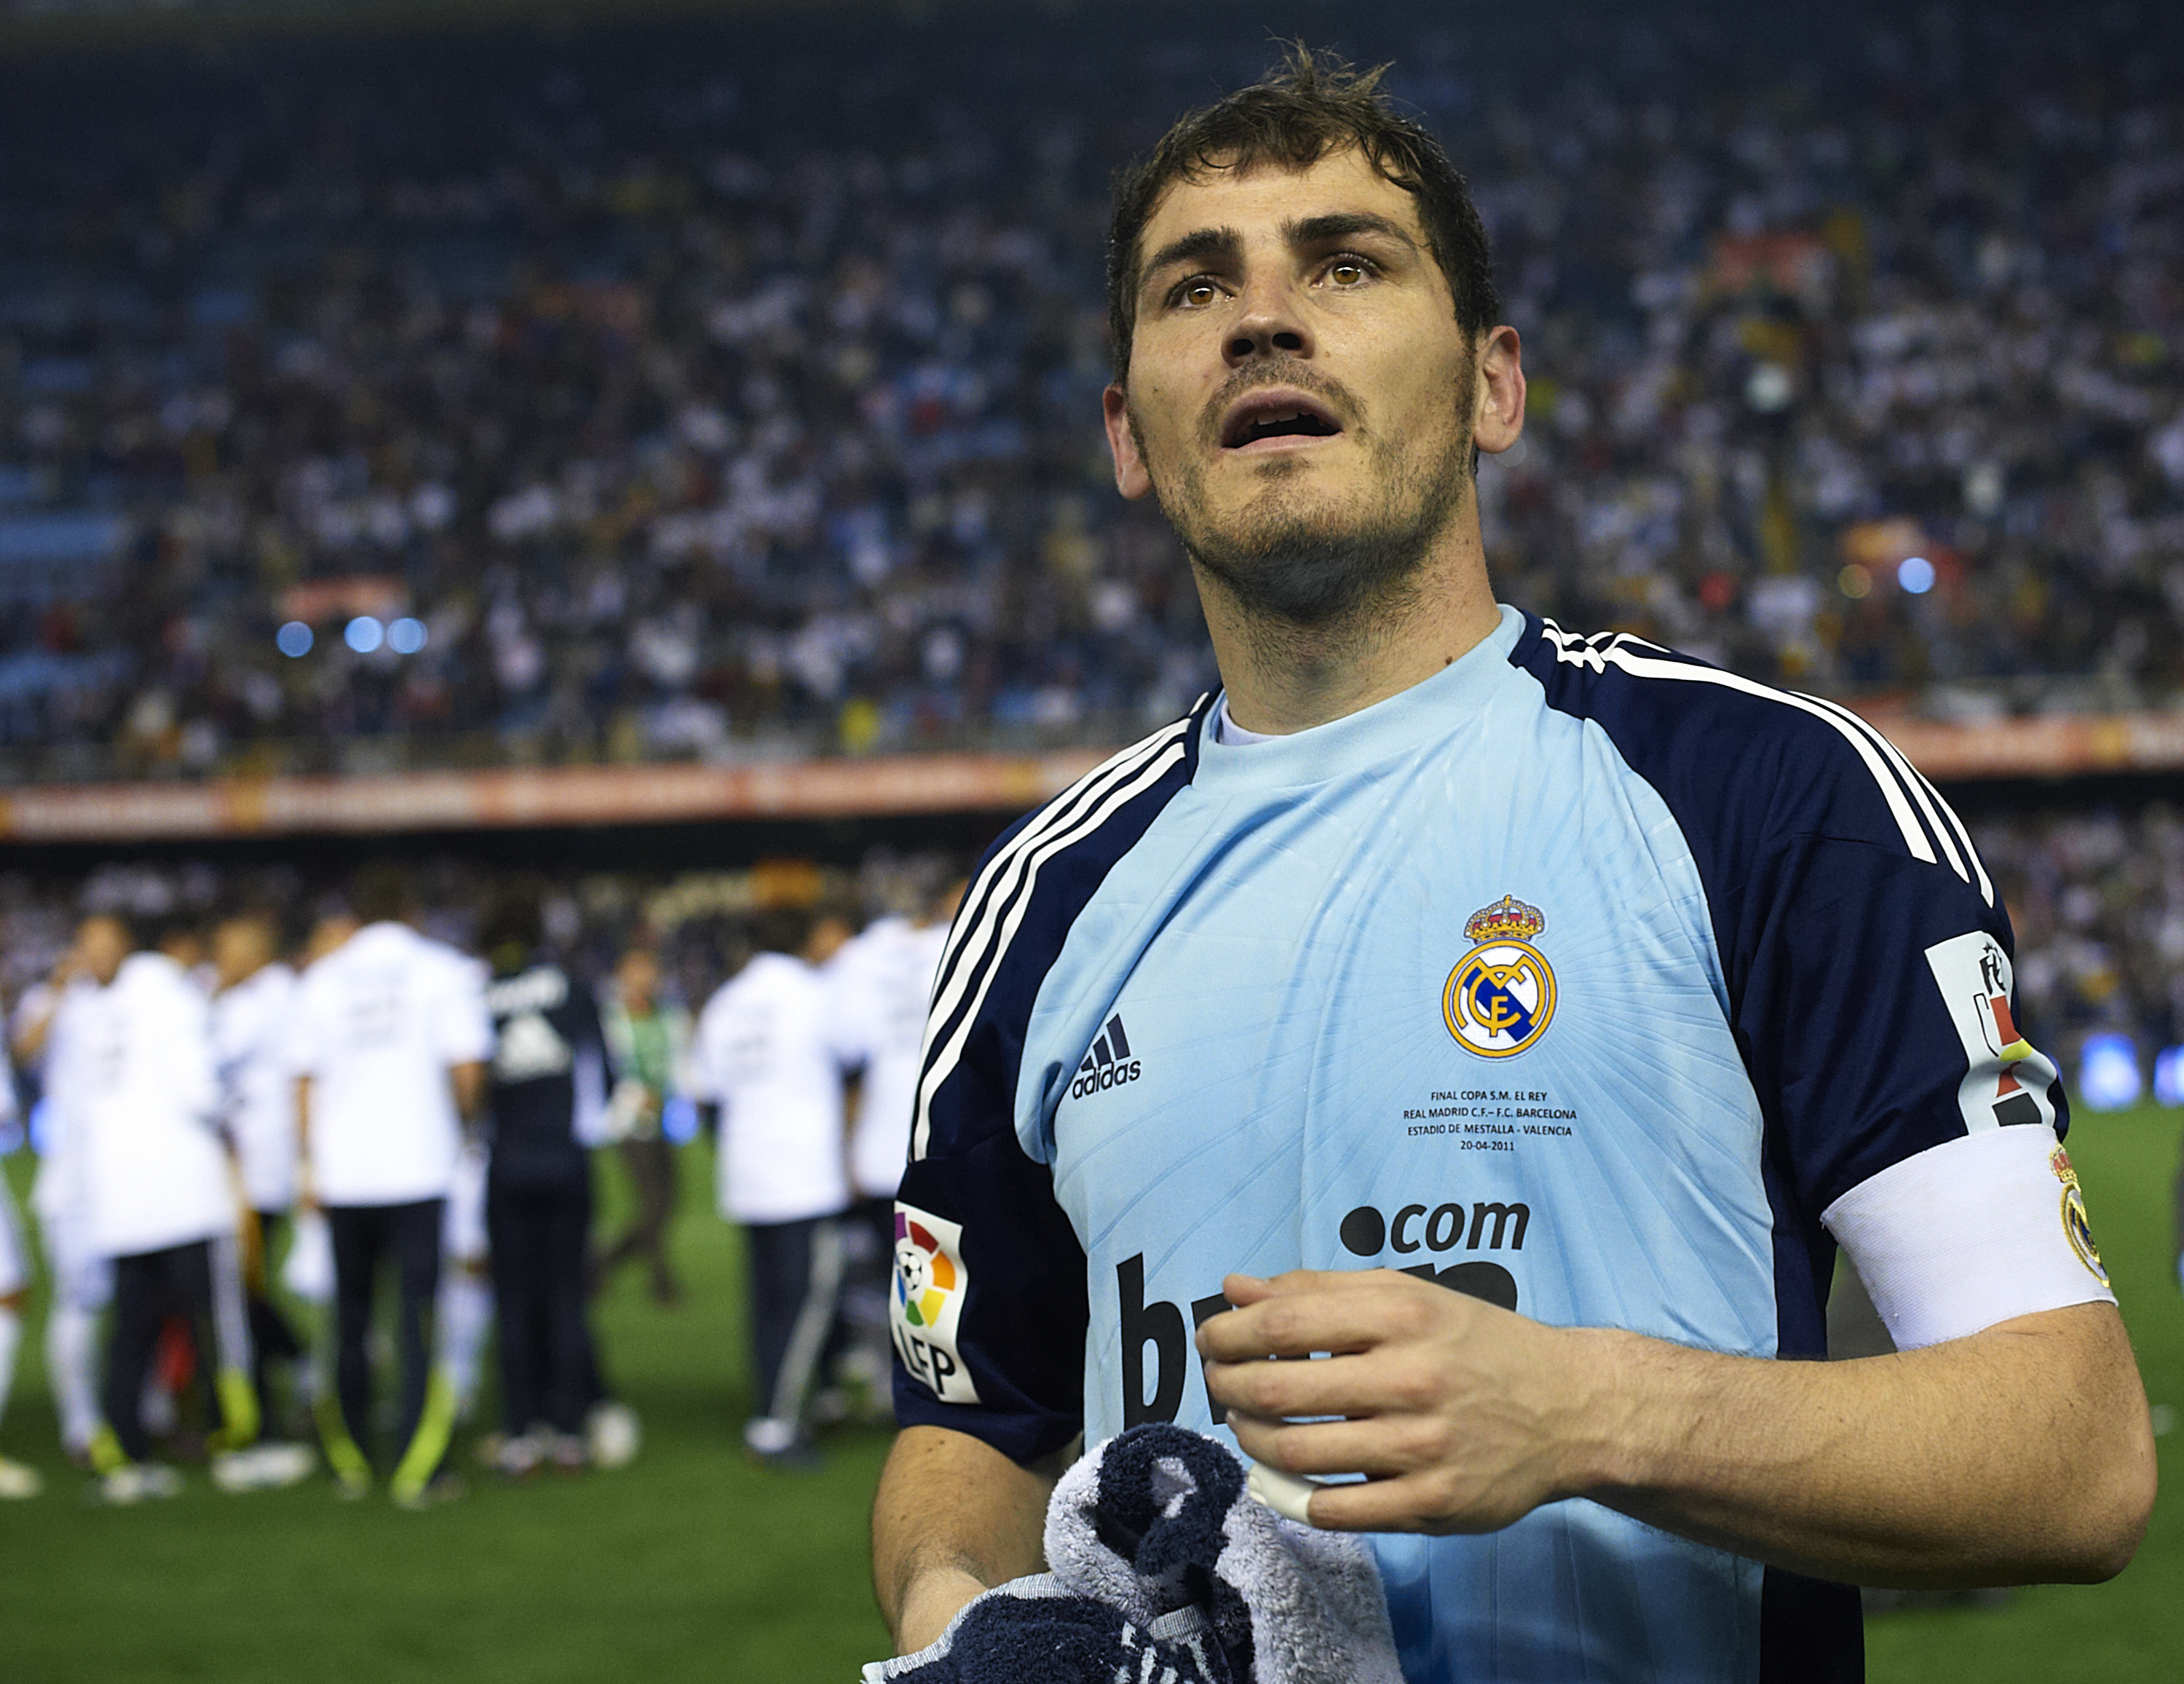 803ac7297 Real Madrid  Ranking the Top 10 Captains in Club History